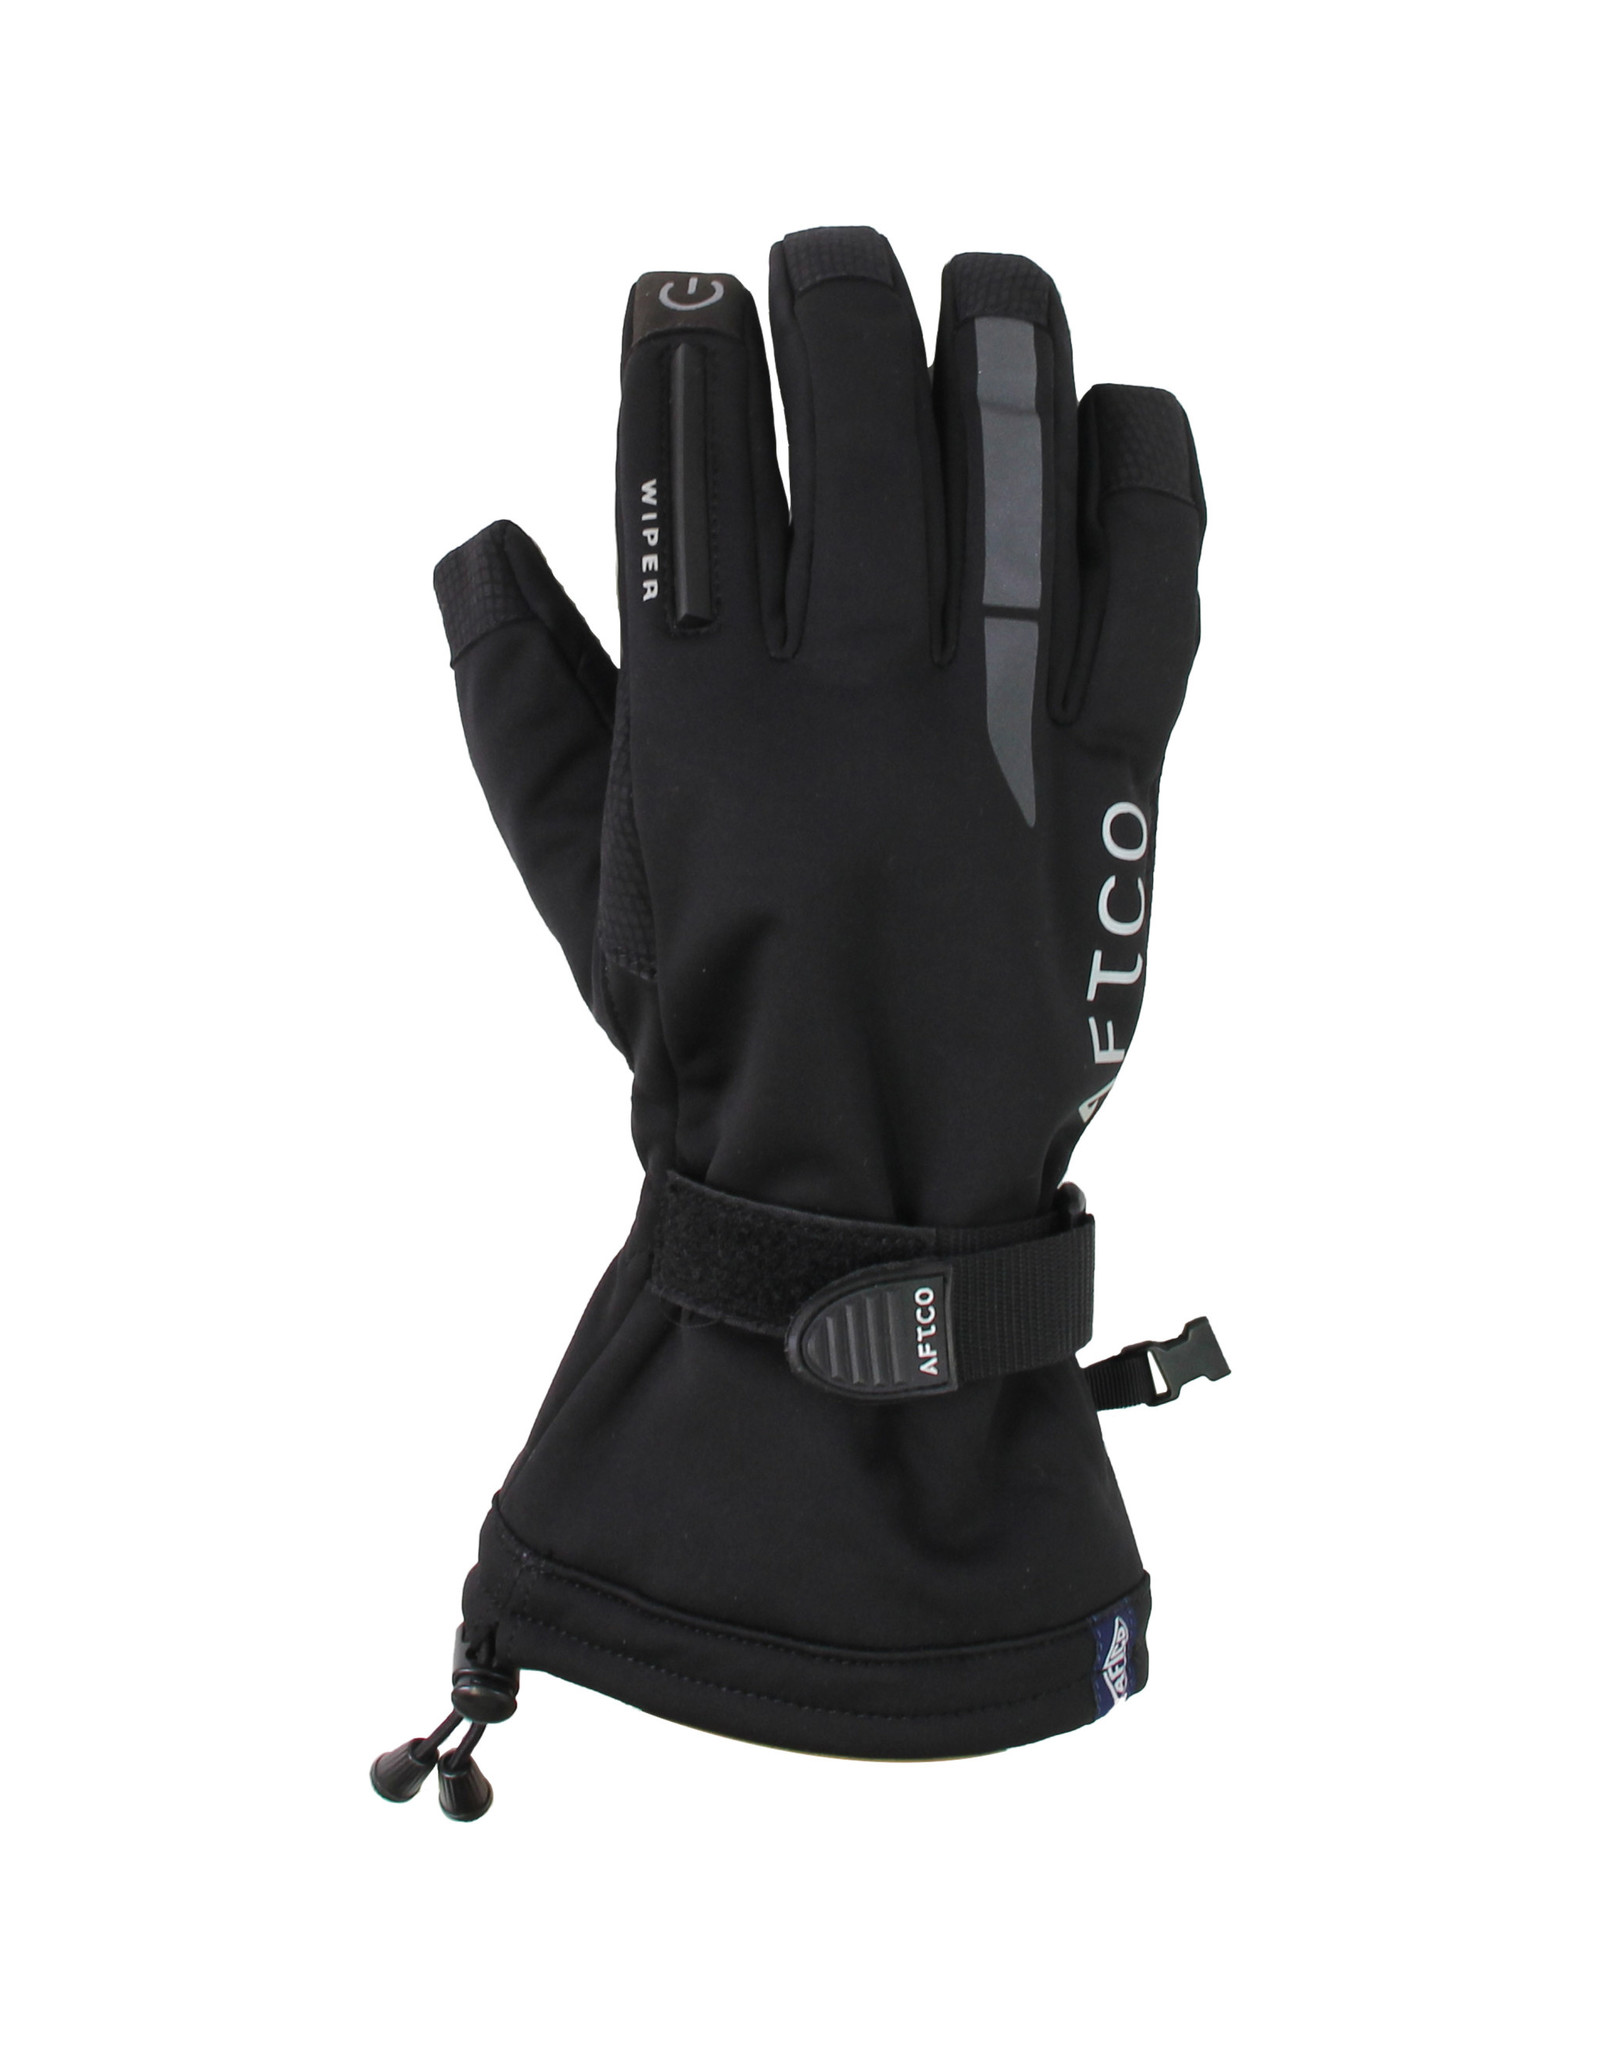 AFTCO AFTCO Hydronaut Waterproof Gloves